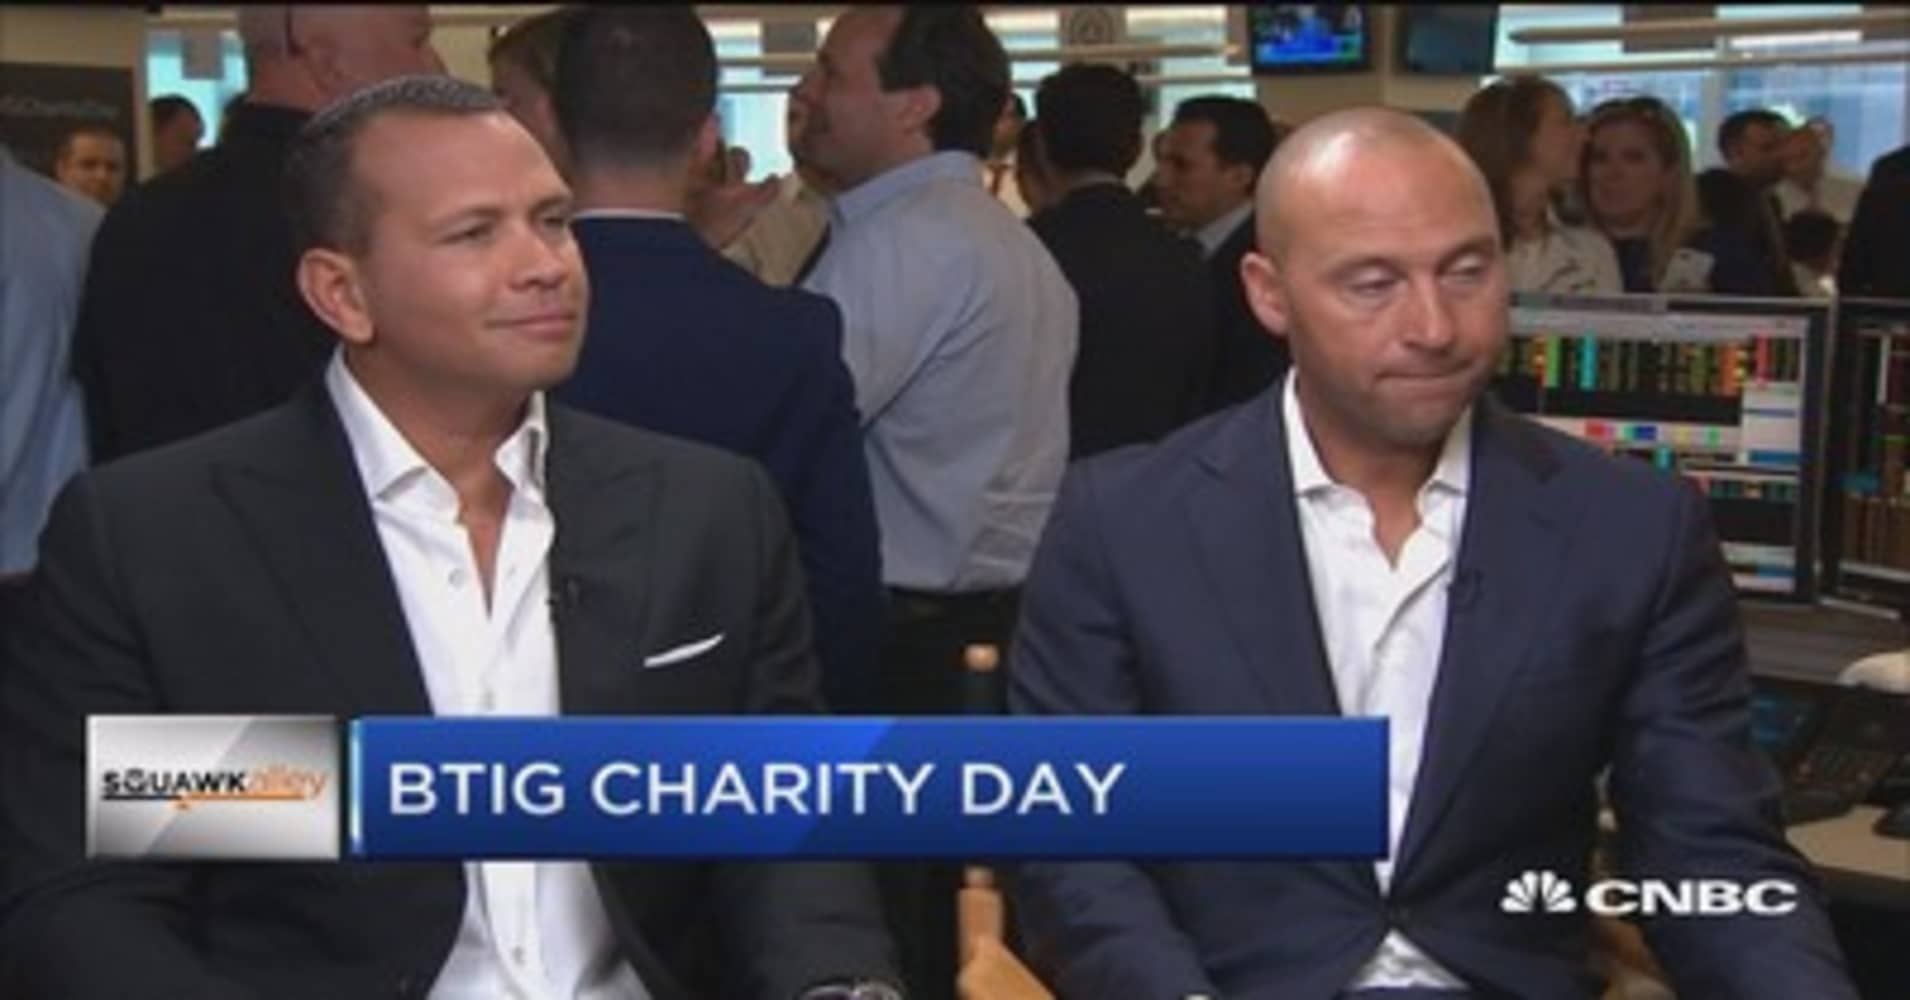 Jeter and A-Rod talk charity at BTIG